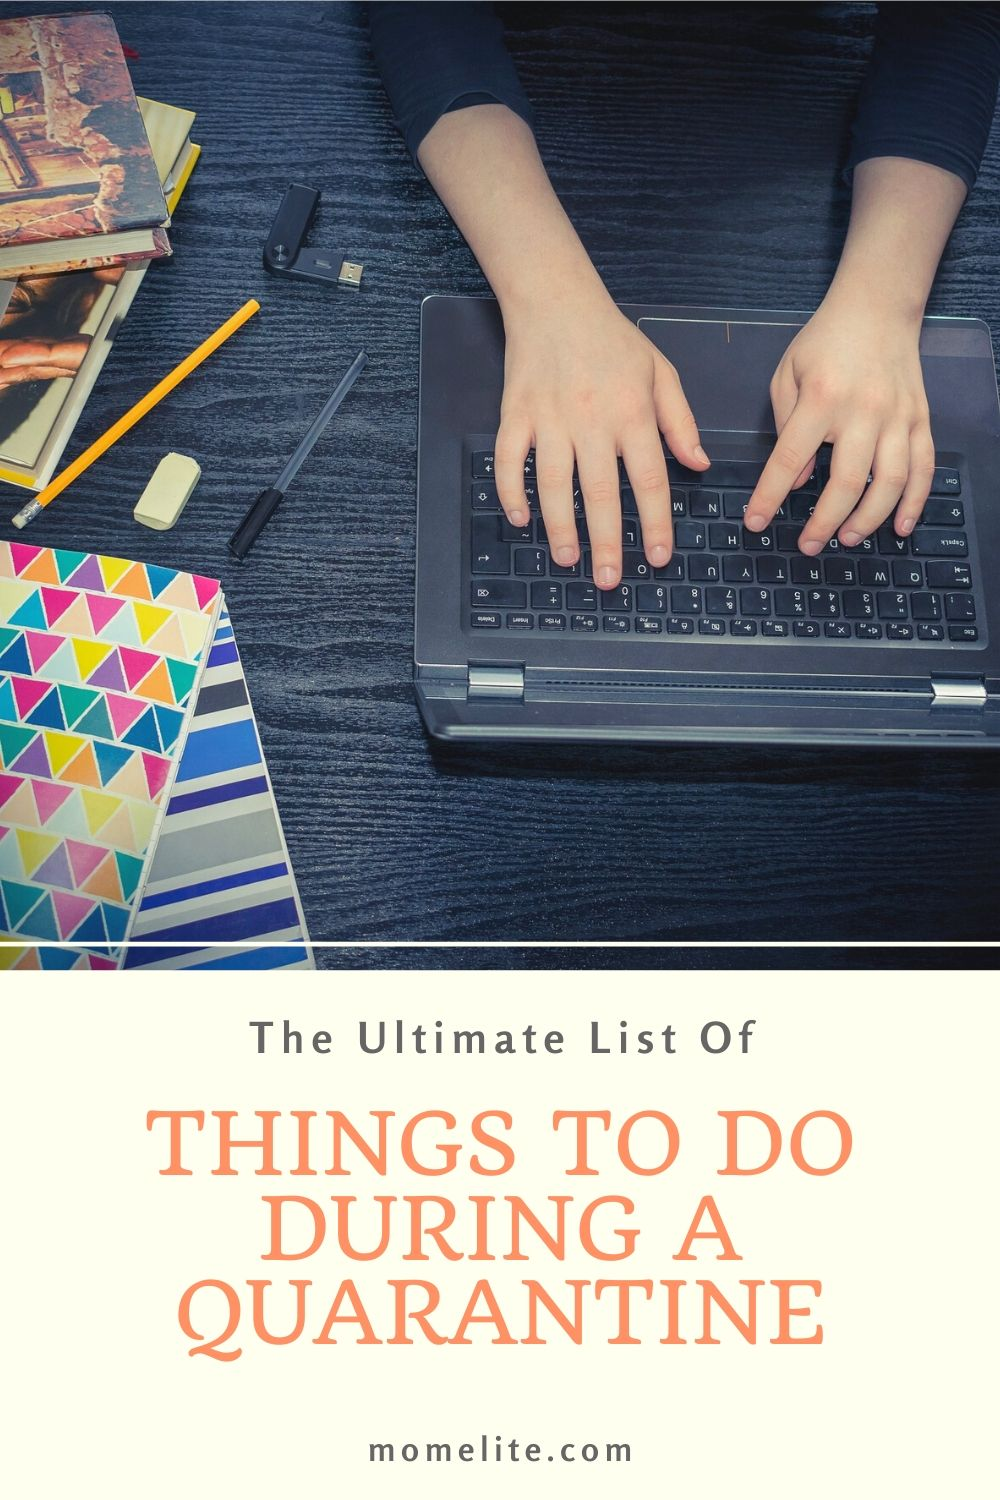 The Ultimate List of Things To Do During a Quarantine